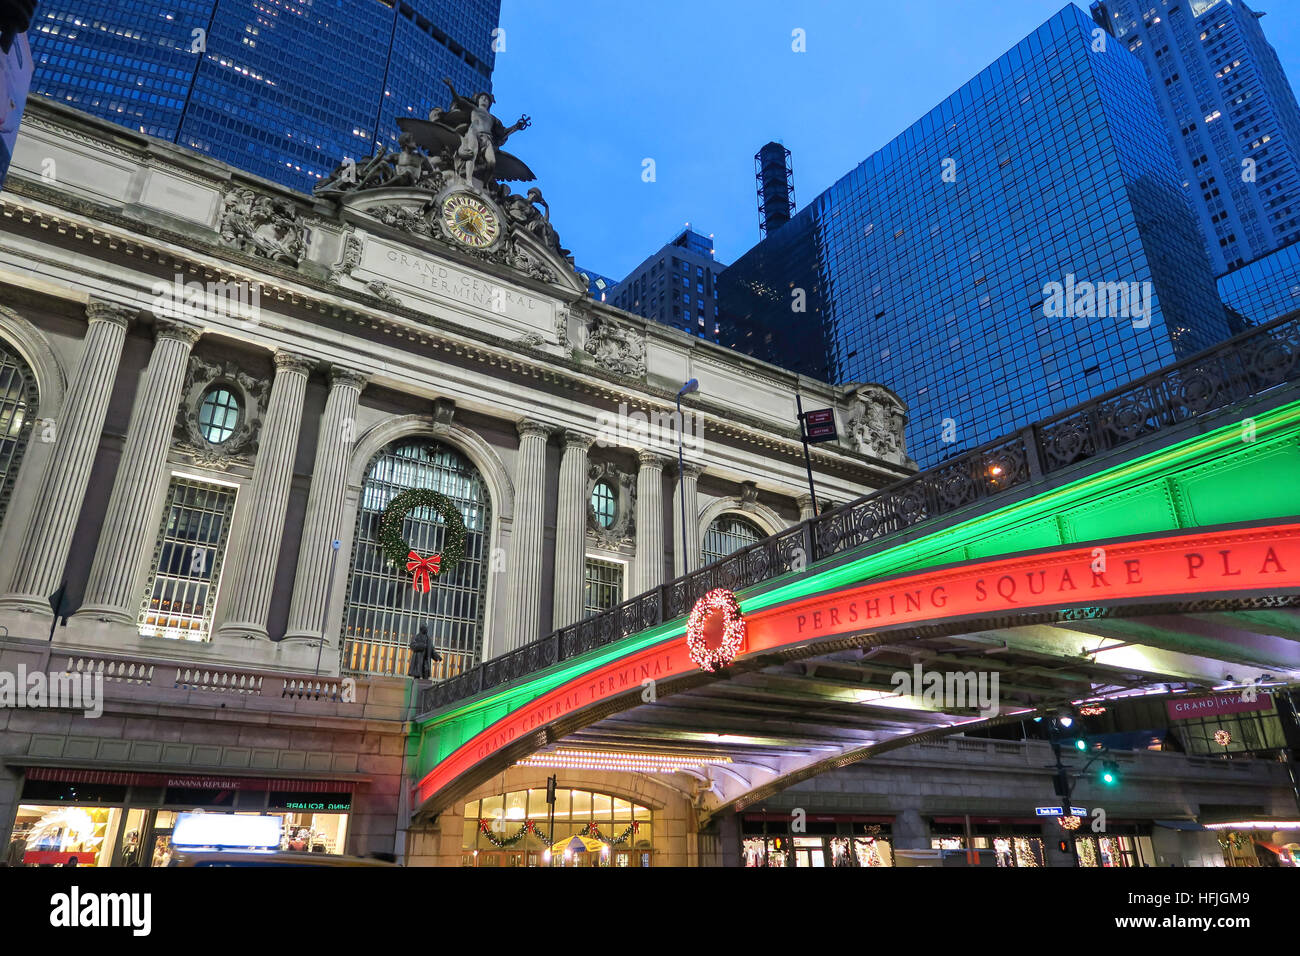 City Lights Stock Photos Images Alamy Terminal 87 To The Fog 86 New Light Pershing Square Holiday In York Usa Image